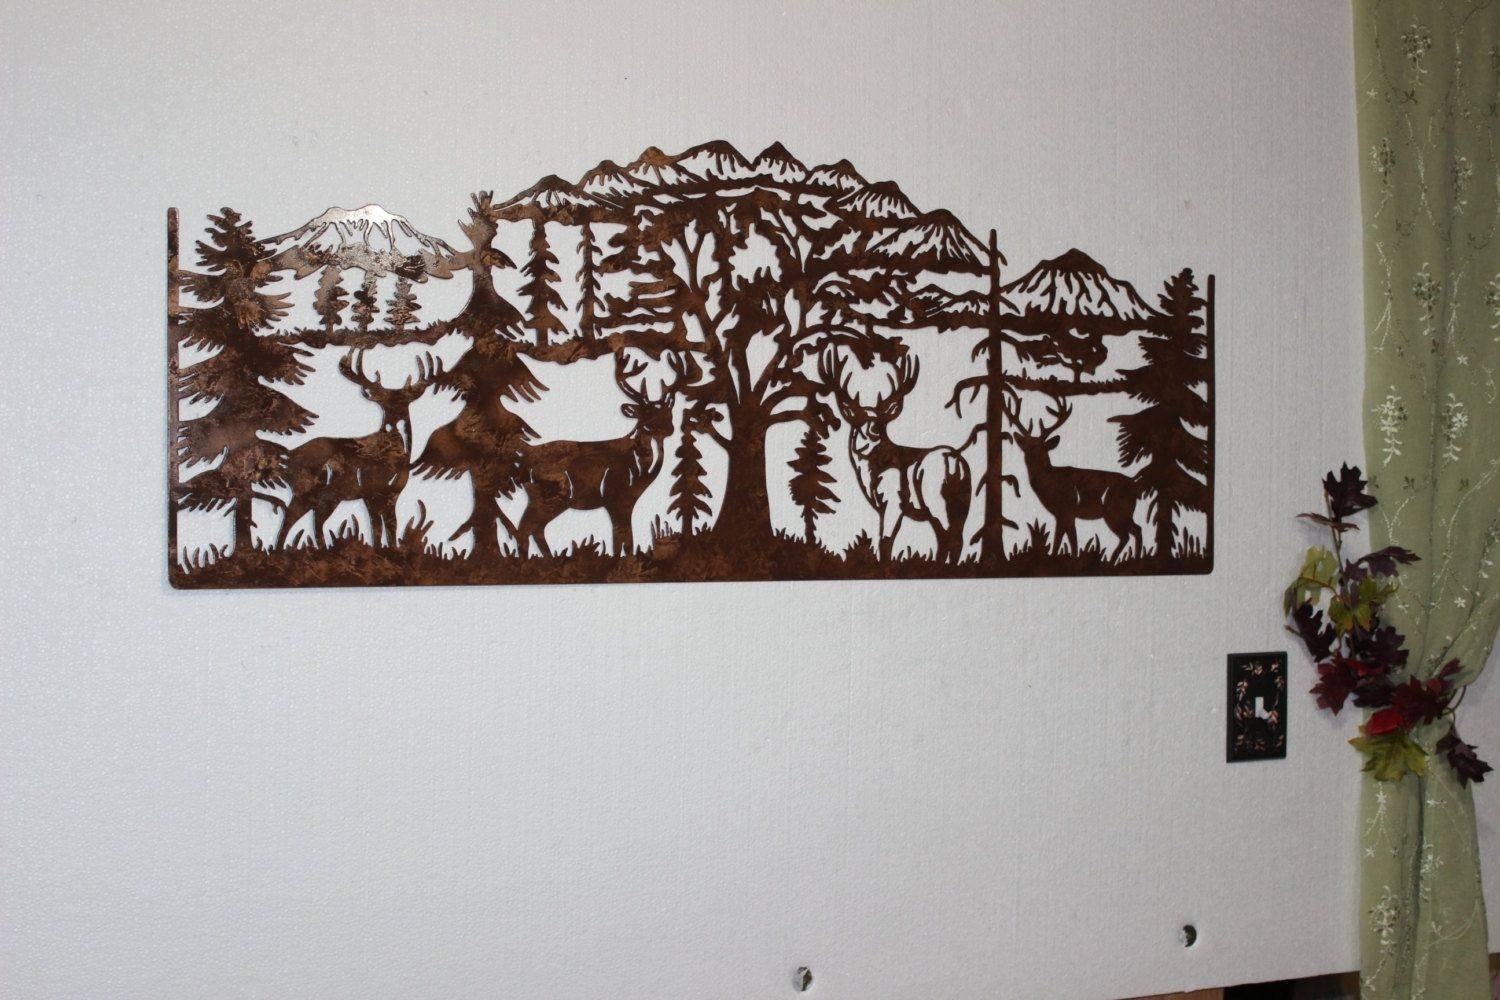 Hand Crafted Deer And Mountain Scene With 4 Majestic Bucks Large For Most Popular Deer Metal Wall Art (View 15 of 20)